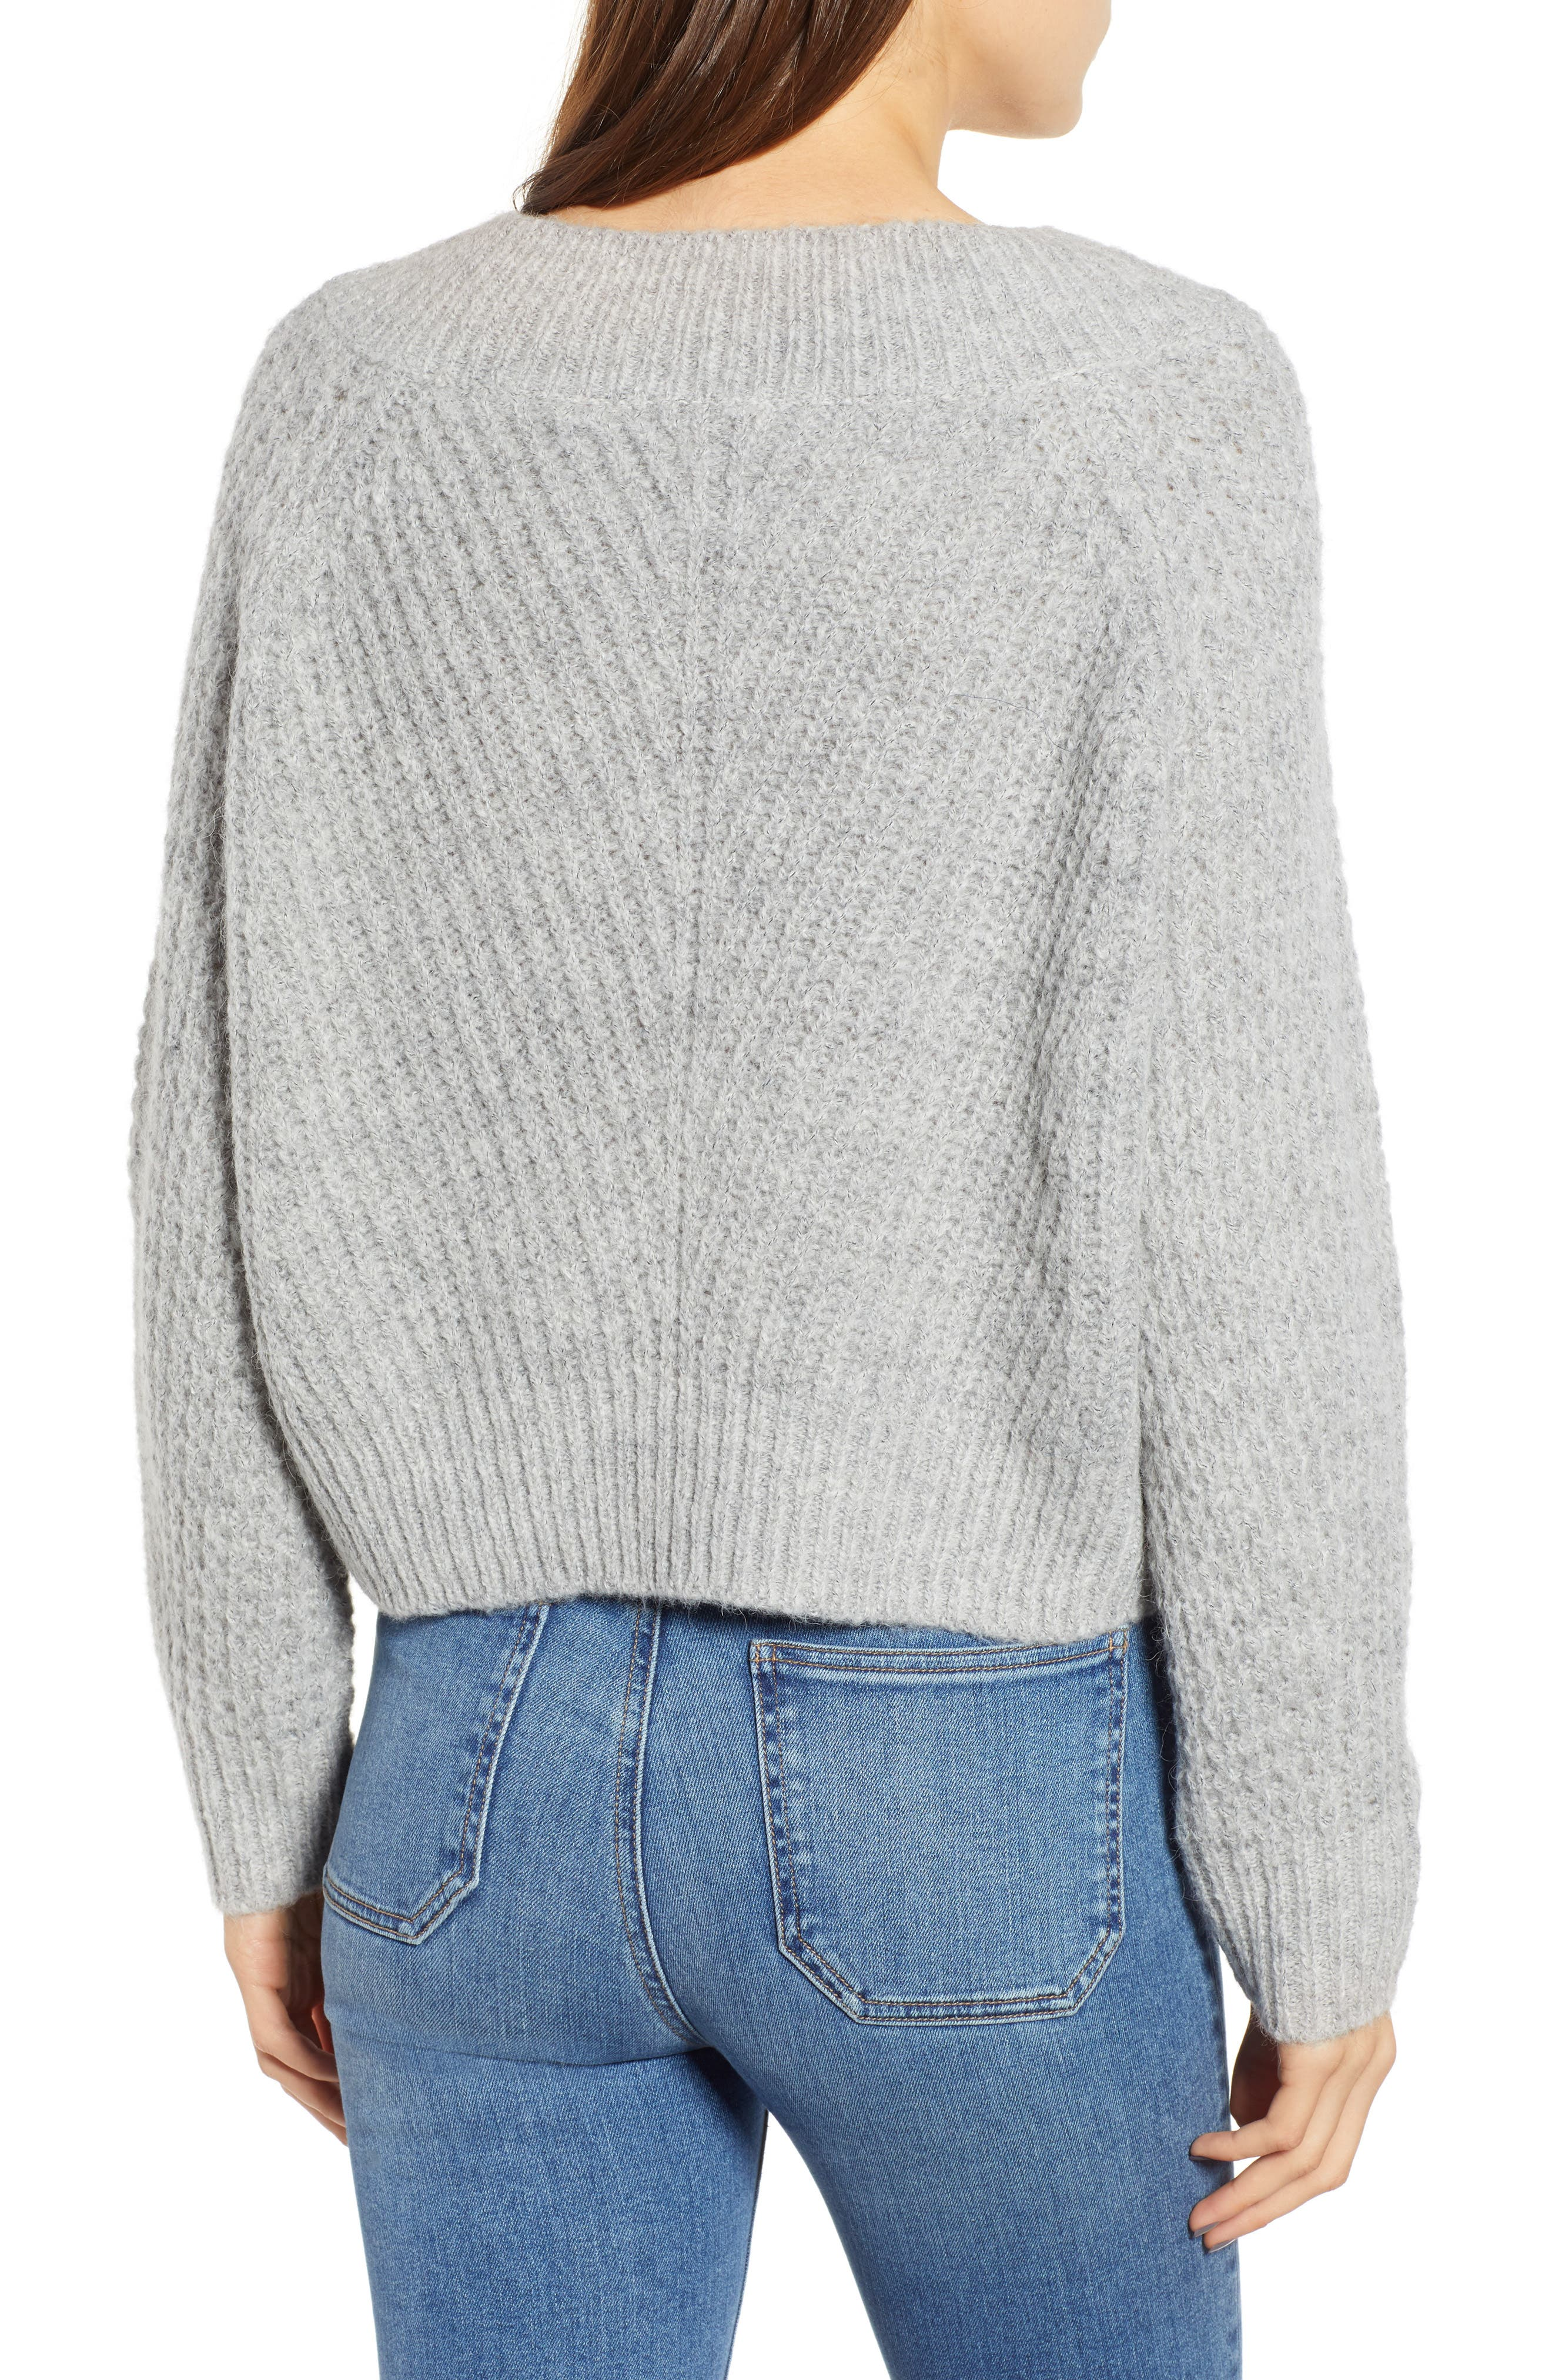 Chunky Crewneck Pullover Sweater,                             Alternate thumbnail 2, color,                             GREY PEARL HEATHER